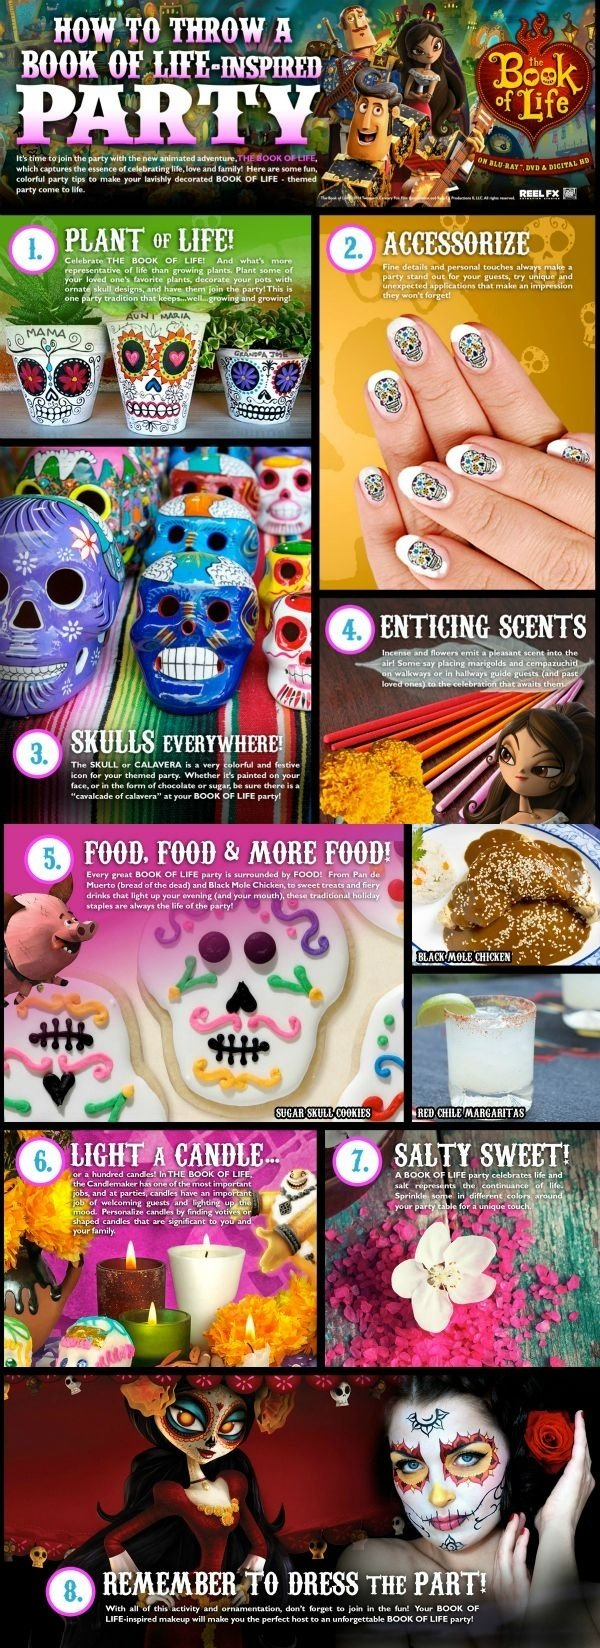 10 Fabulous Day Of The Dead Party Ideas day of the dead party ideas dia de los muertos party pinterest 2021